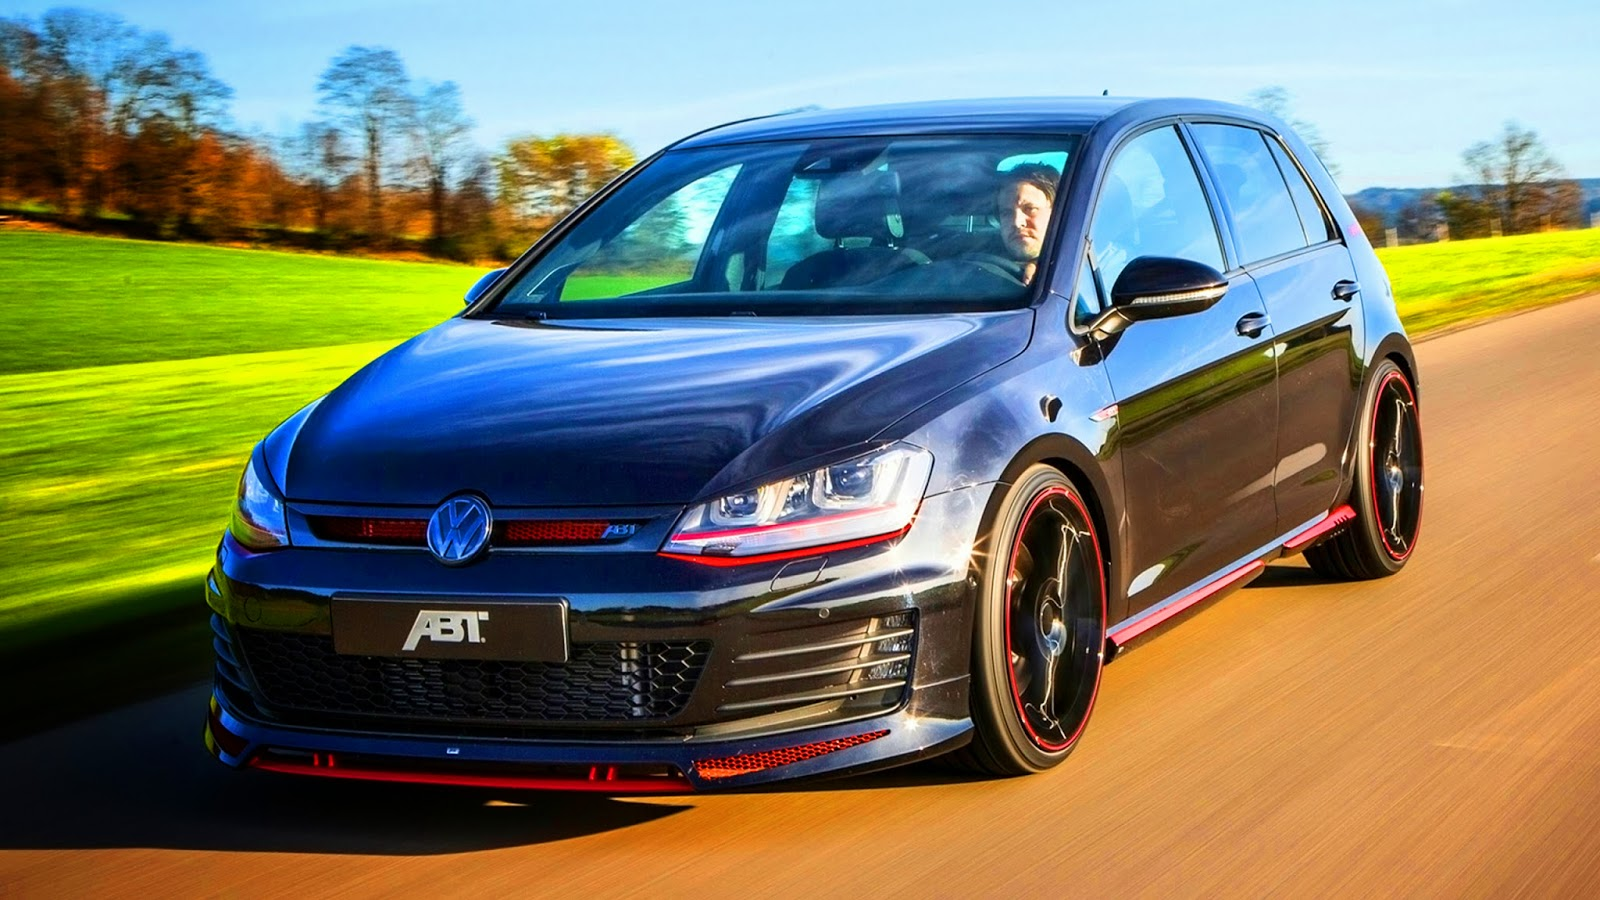 abt vs4 volkswagen golf gti dark edition 2014 aro 20 2 0 tsi turbo 300 cv 258 kmh 0 100 kmh 5 8. Black Bedroom Furniture Sets. Home Design Ideas